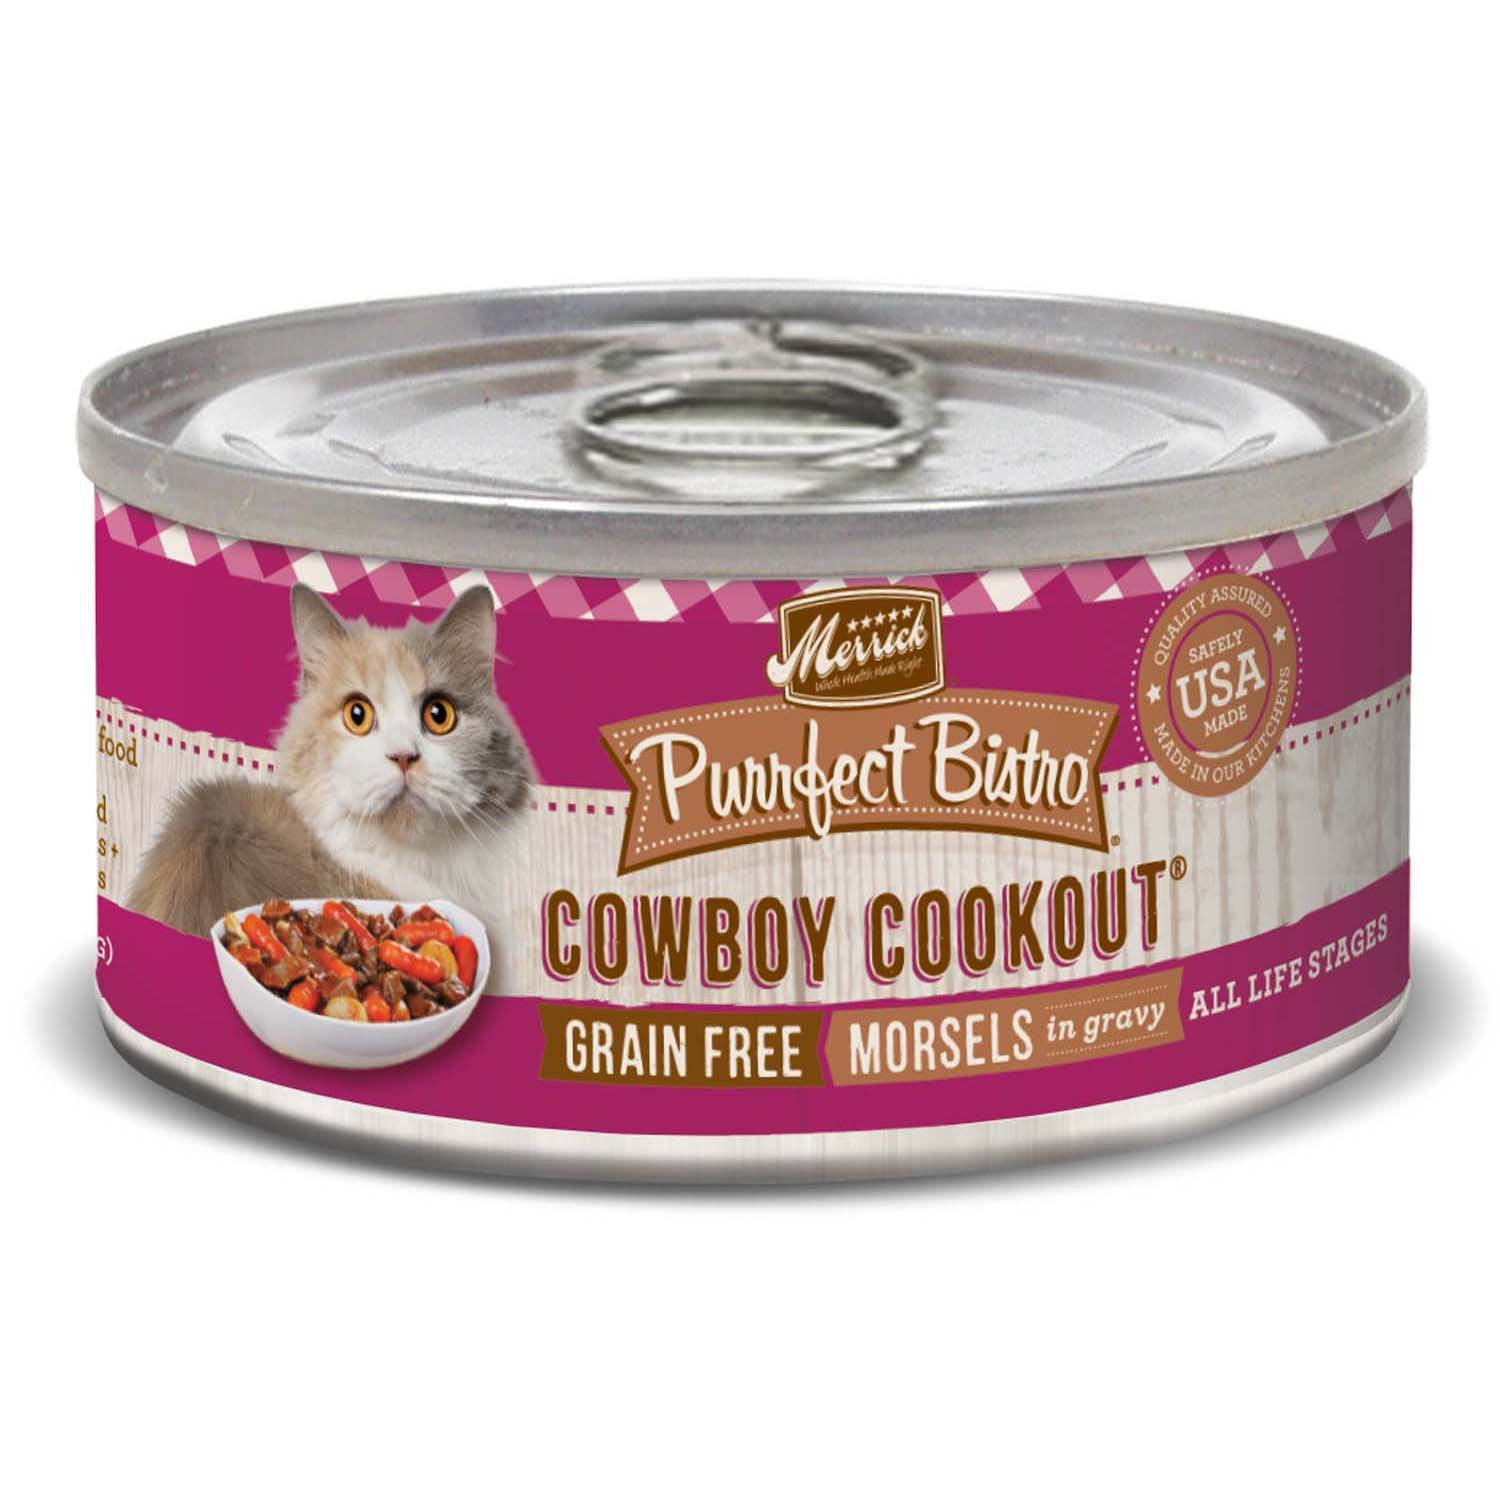 Merrick Purrfect Bistro Grain Free Cowboy Cookout Wet Cat Food, 5.5 oz, Case of 24, 24 X 5.5 OZ